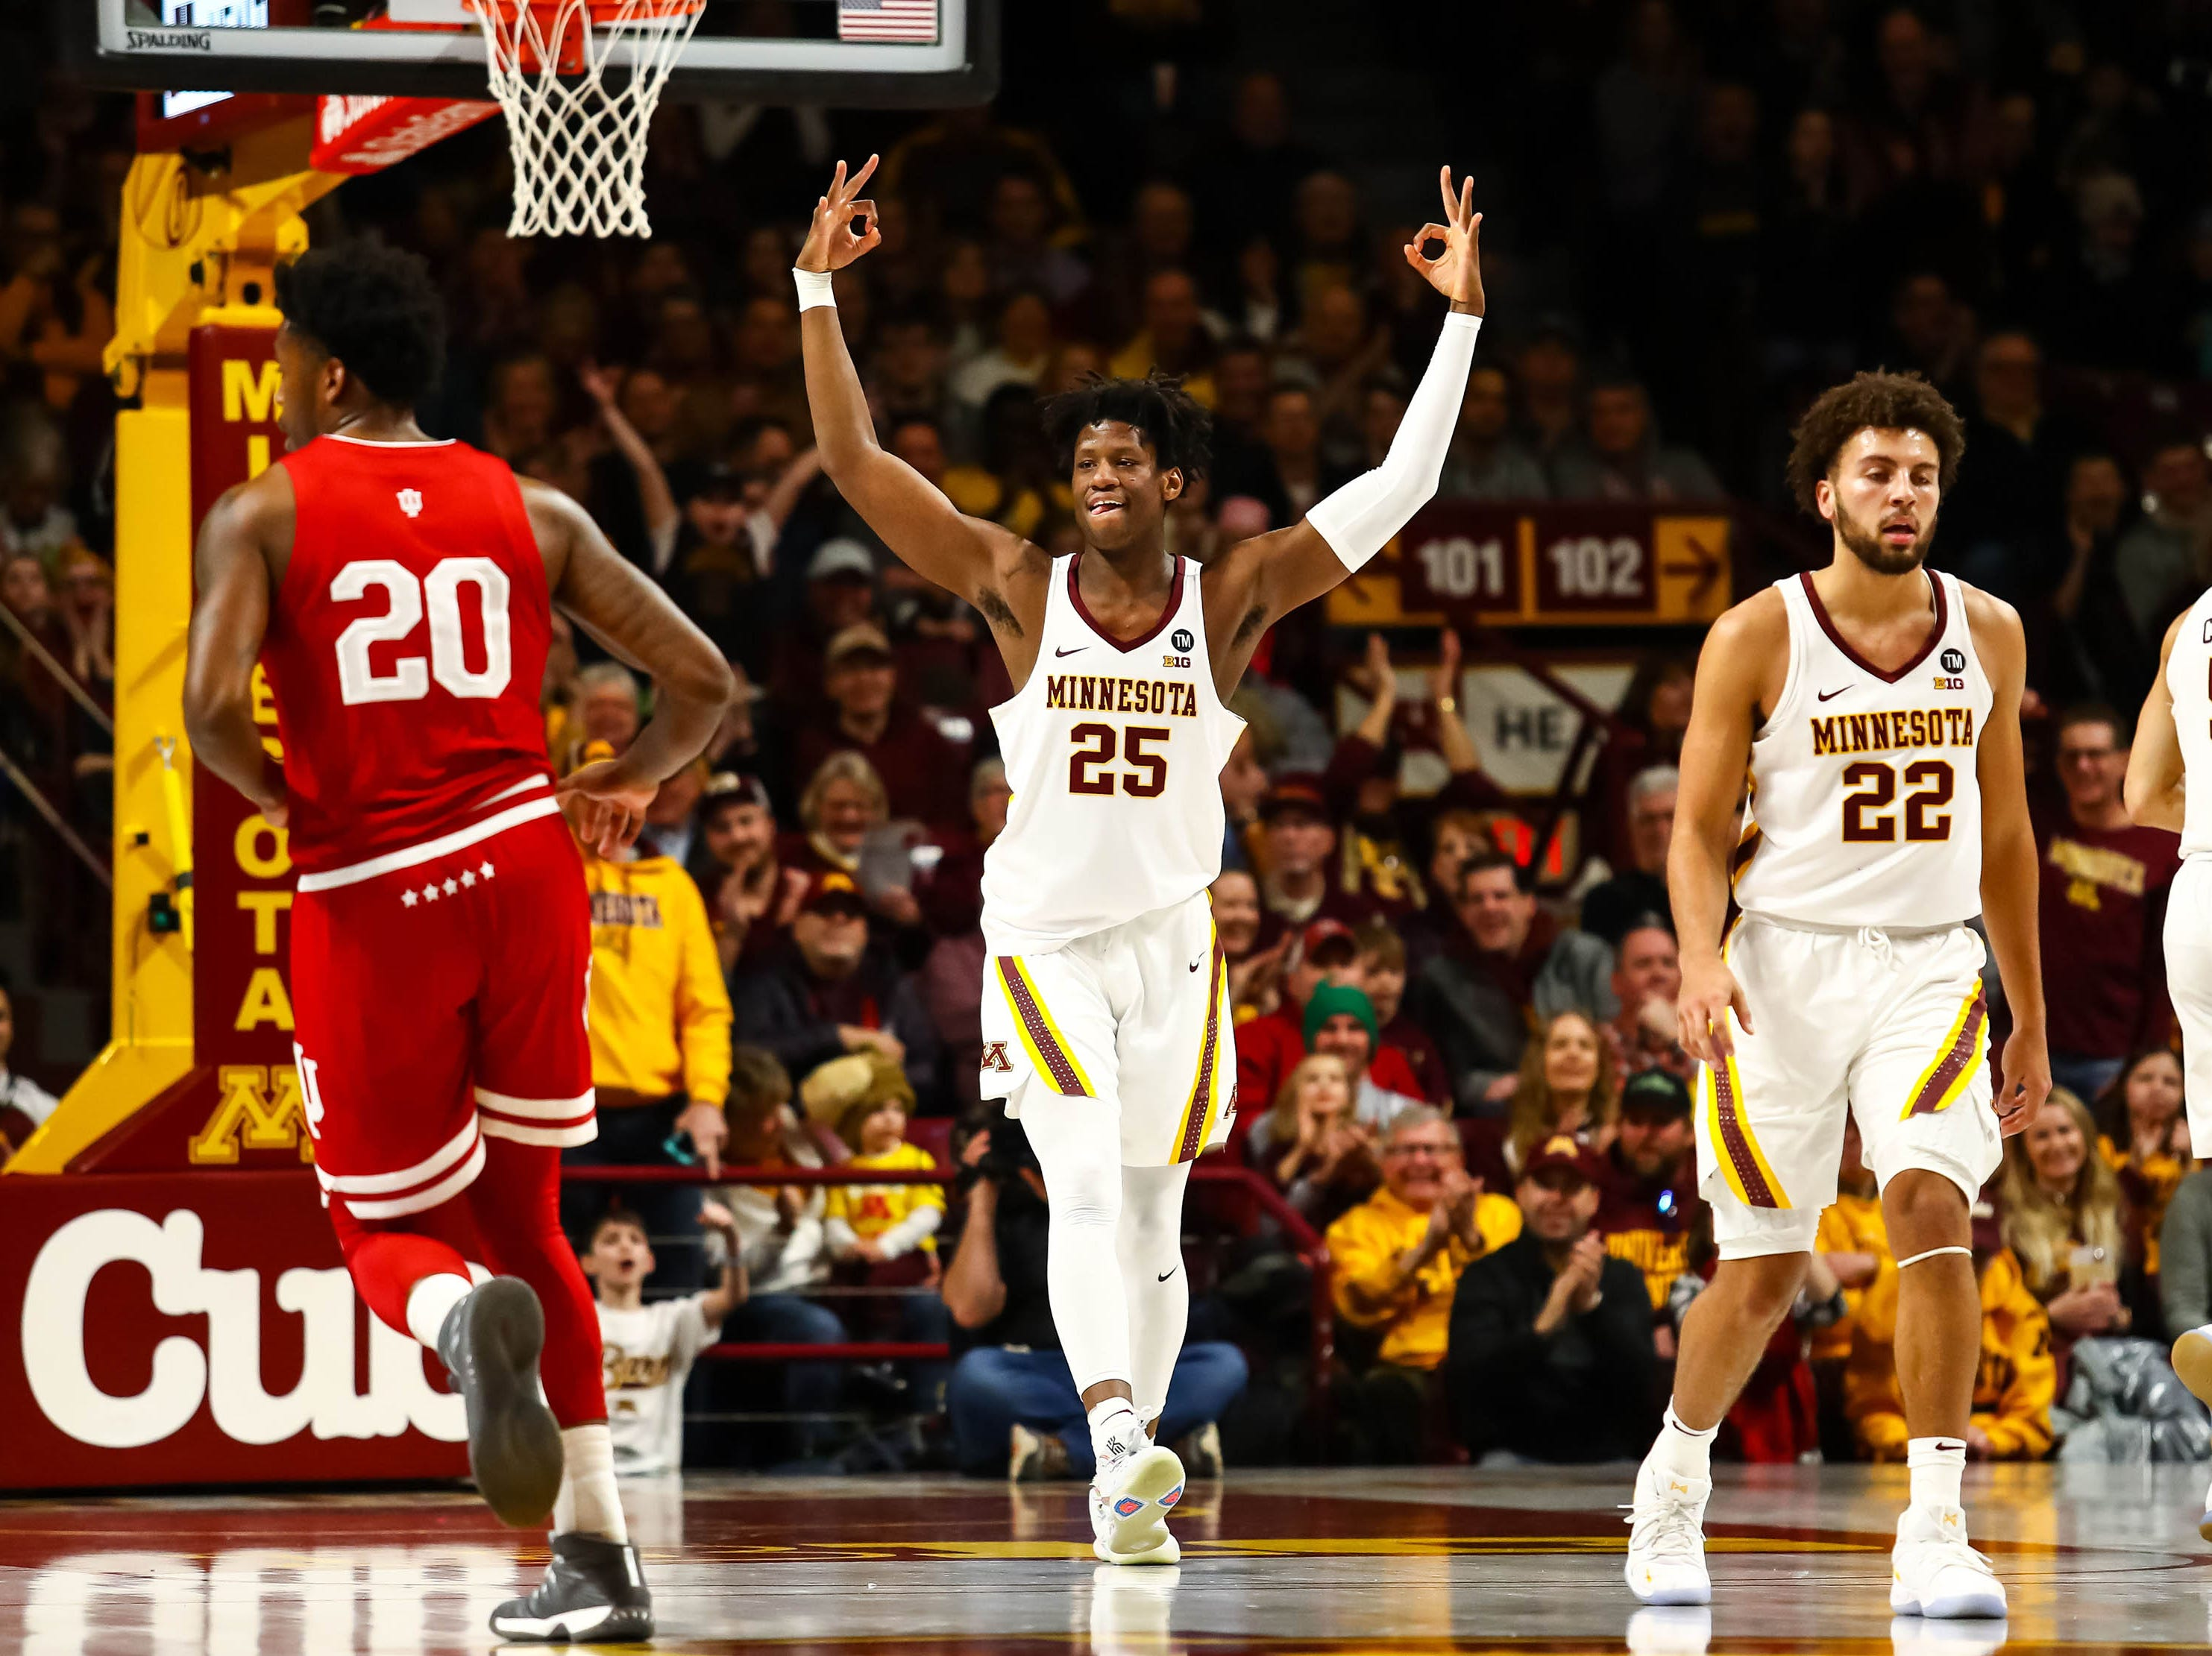 Minnesota Golden Gophers center Daniel Oturu (25) reacts after hitting a three point shot in the first half against the Indiana Hoosiers at Williams Arena.